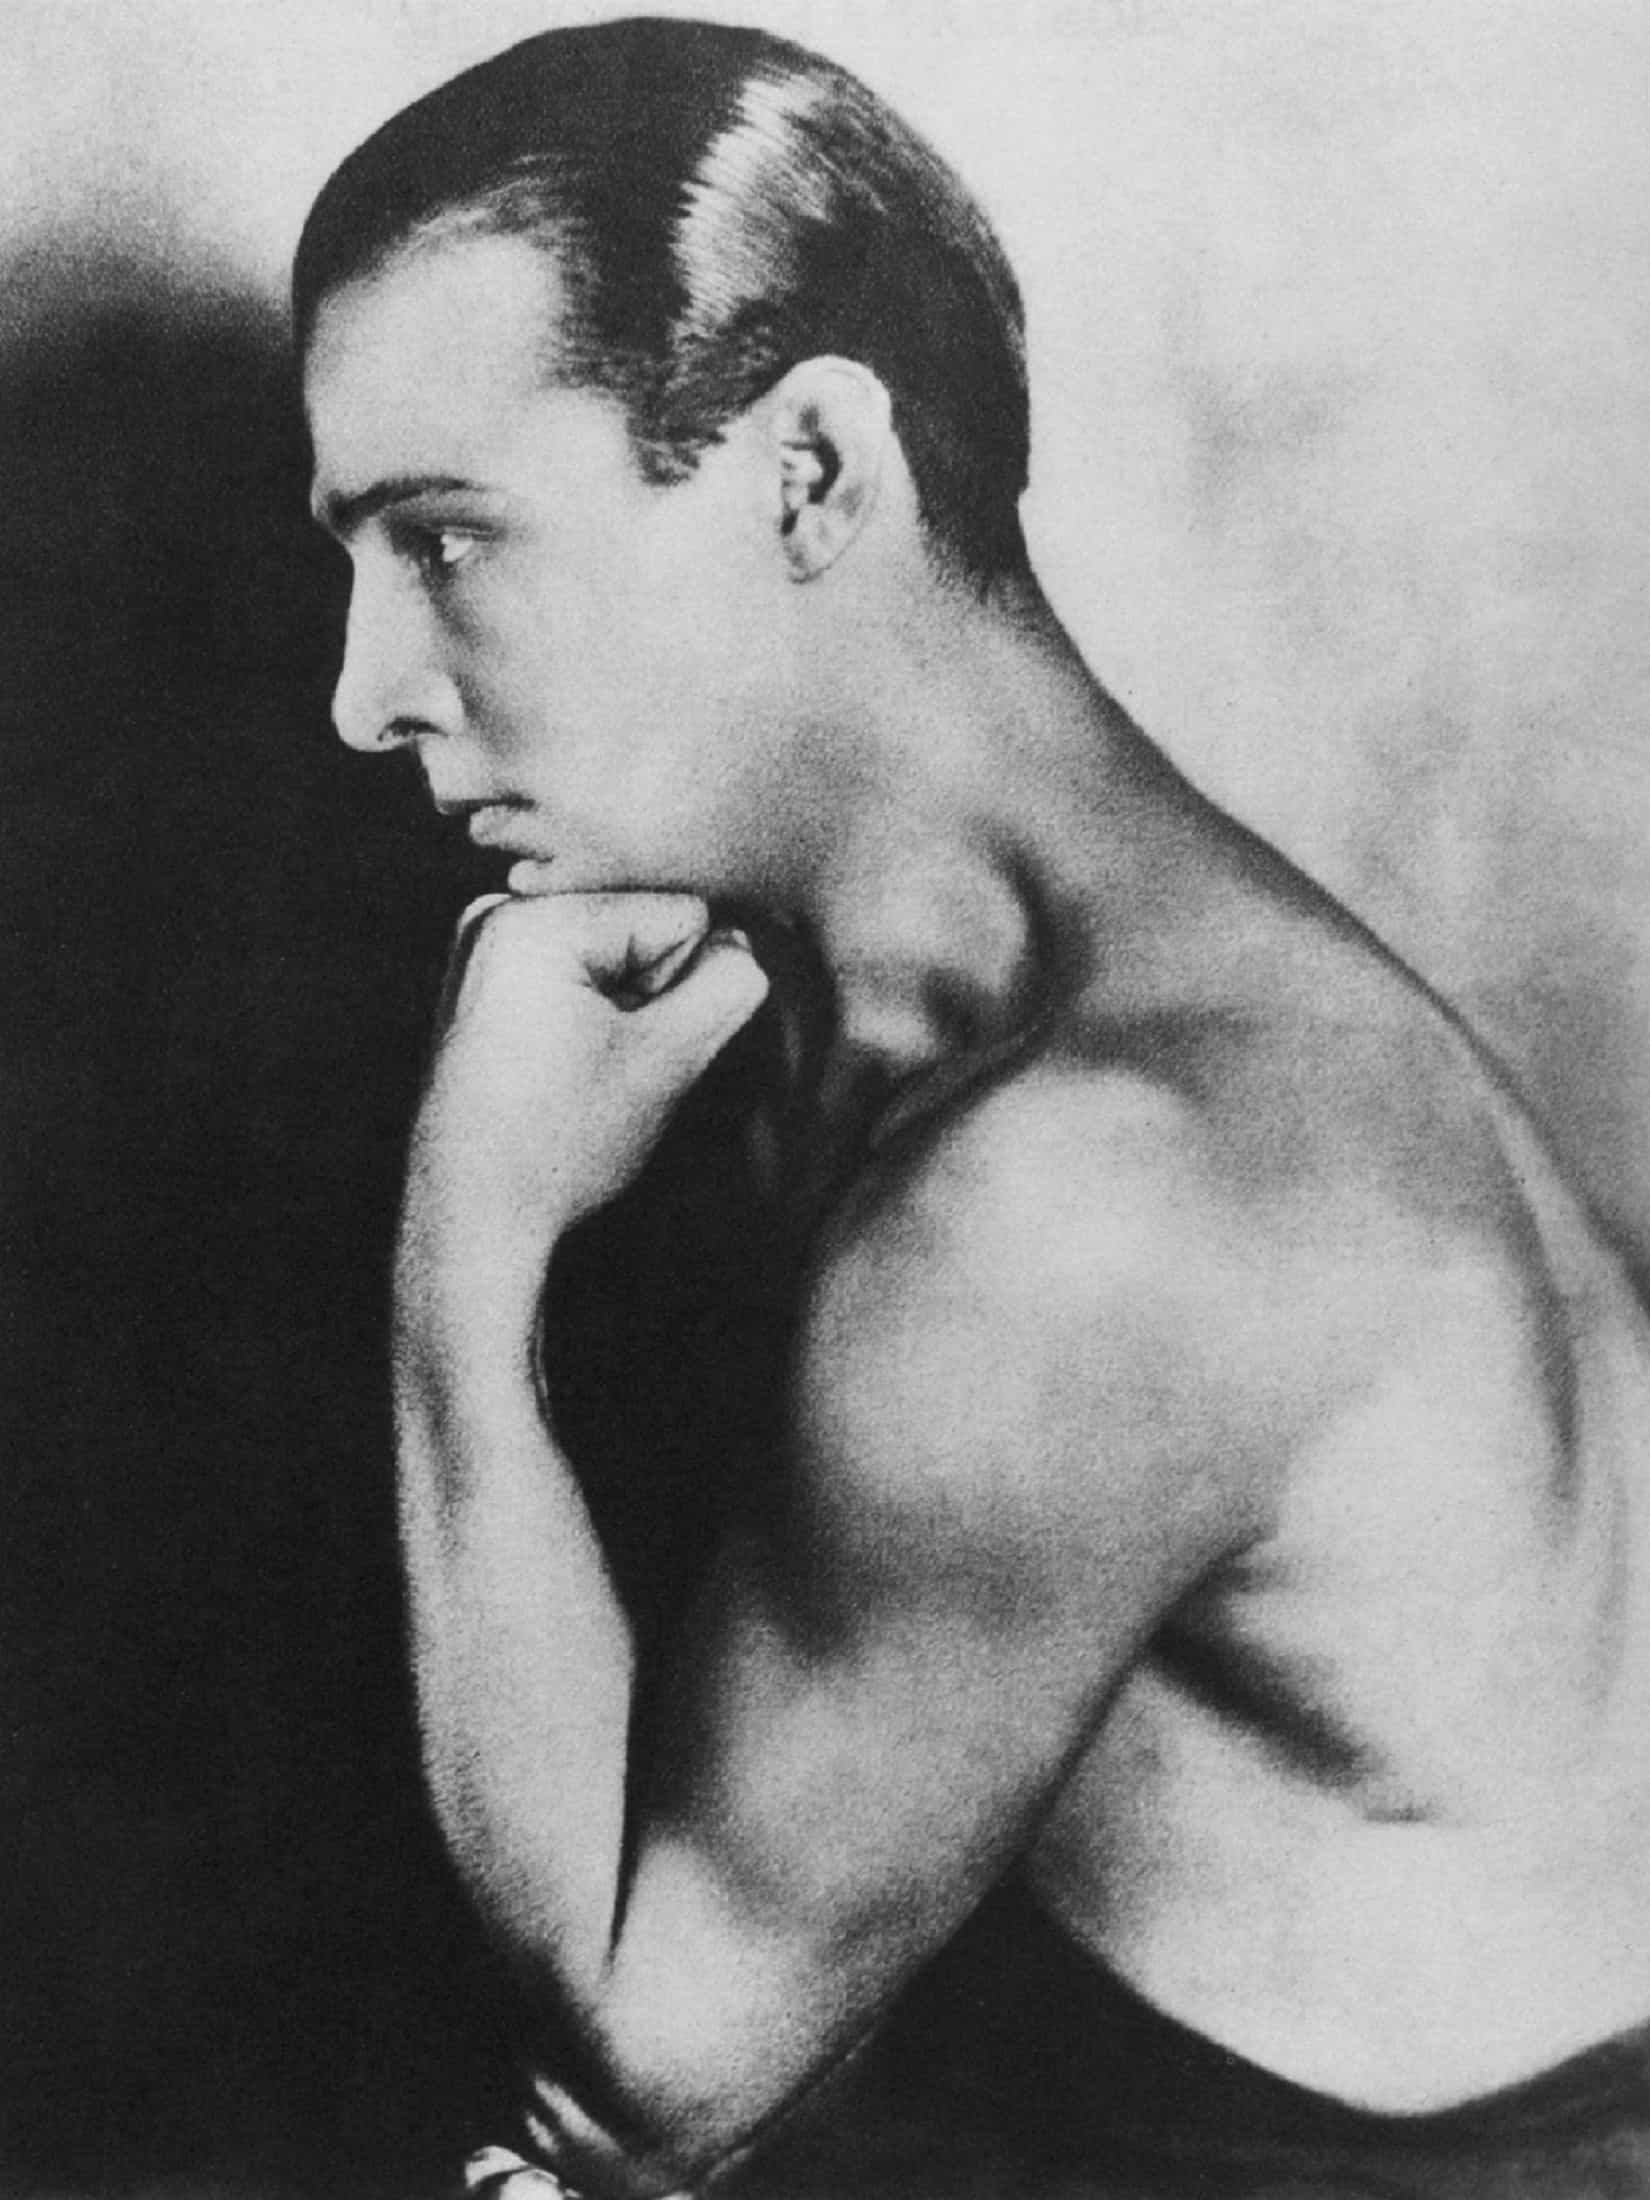 Fellow Italian, Rudolph Valentino was a rising star in the fledgeling Hollywood film industry at the time.